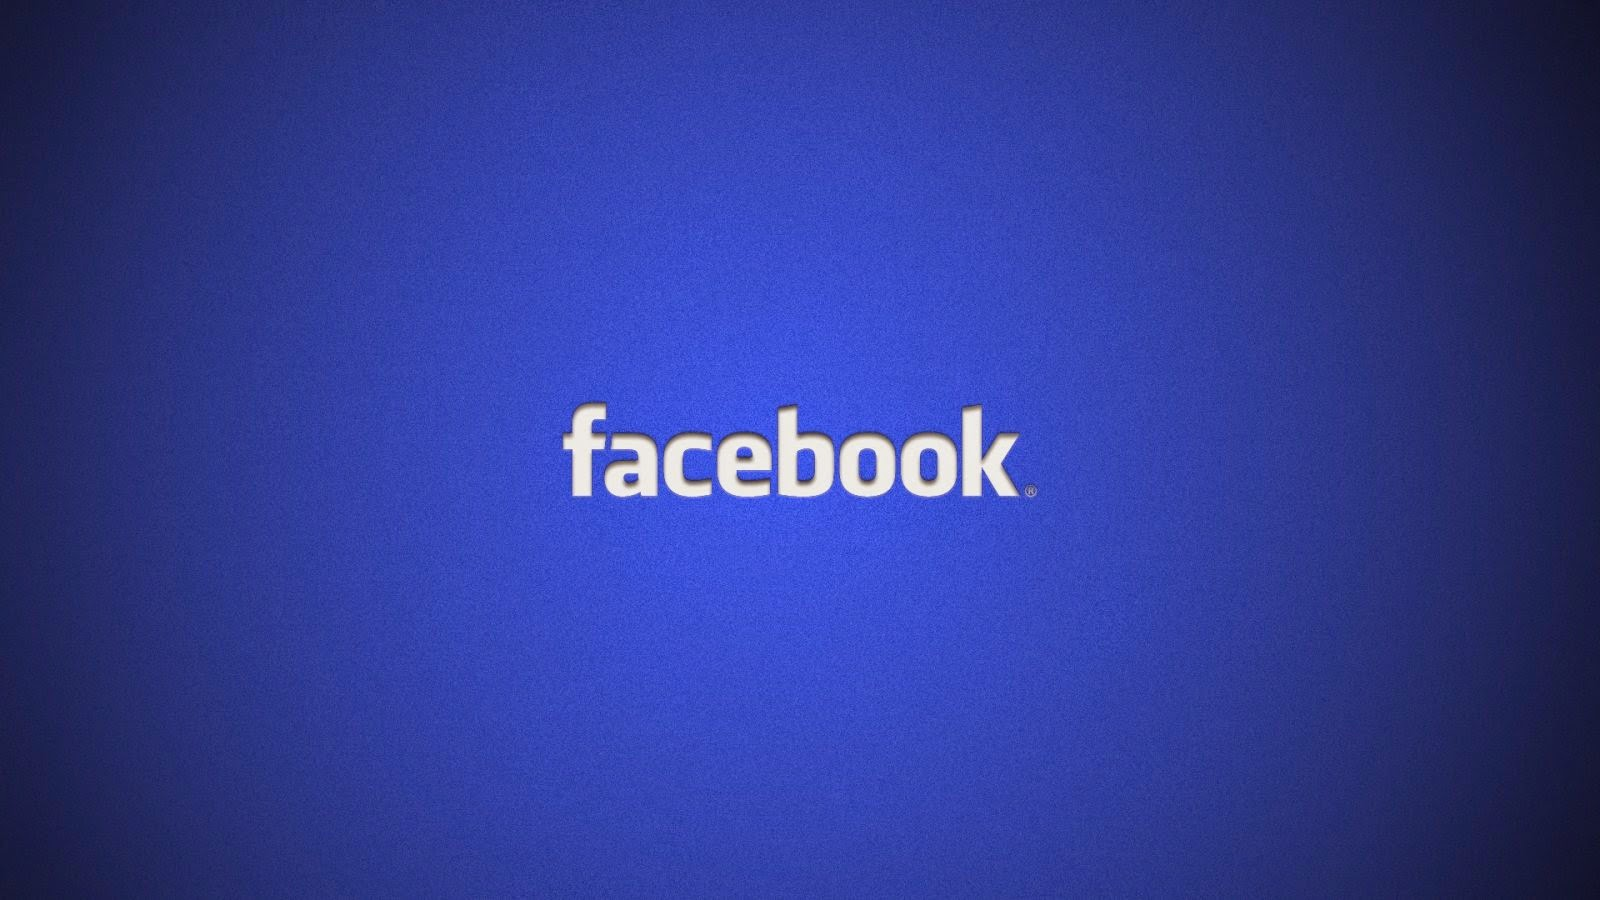 Facebook Iniciar Sesion Related Keywords - Facebook ...